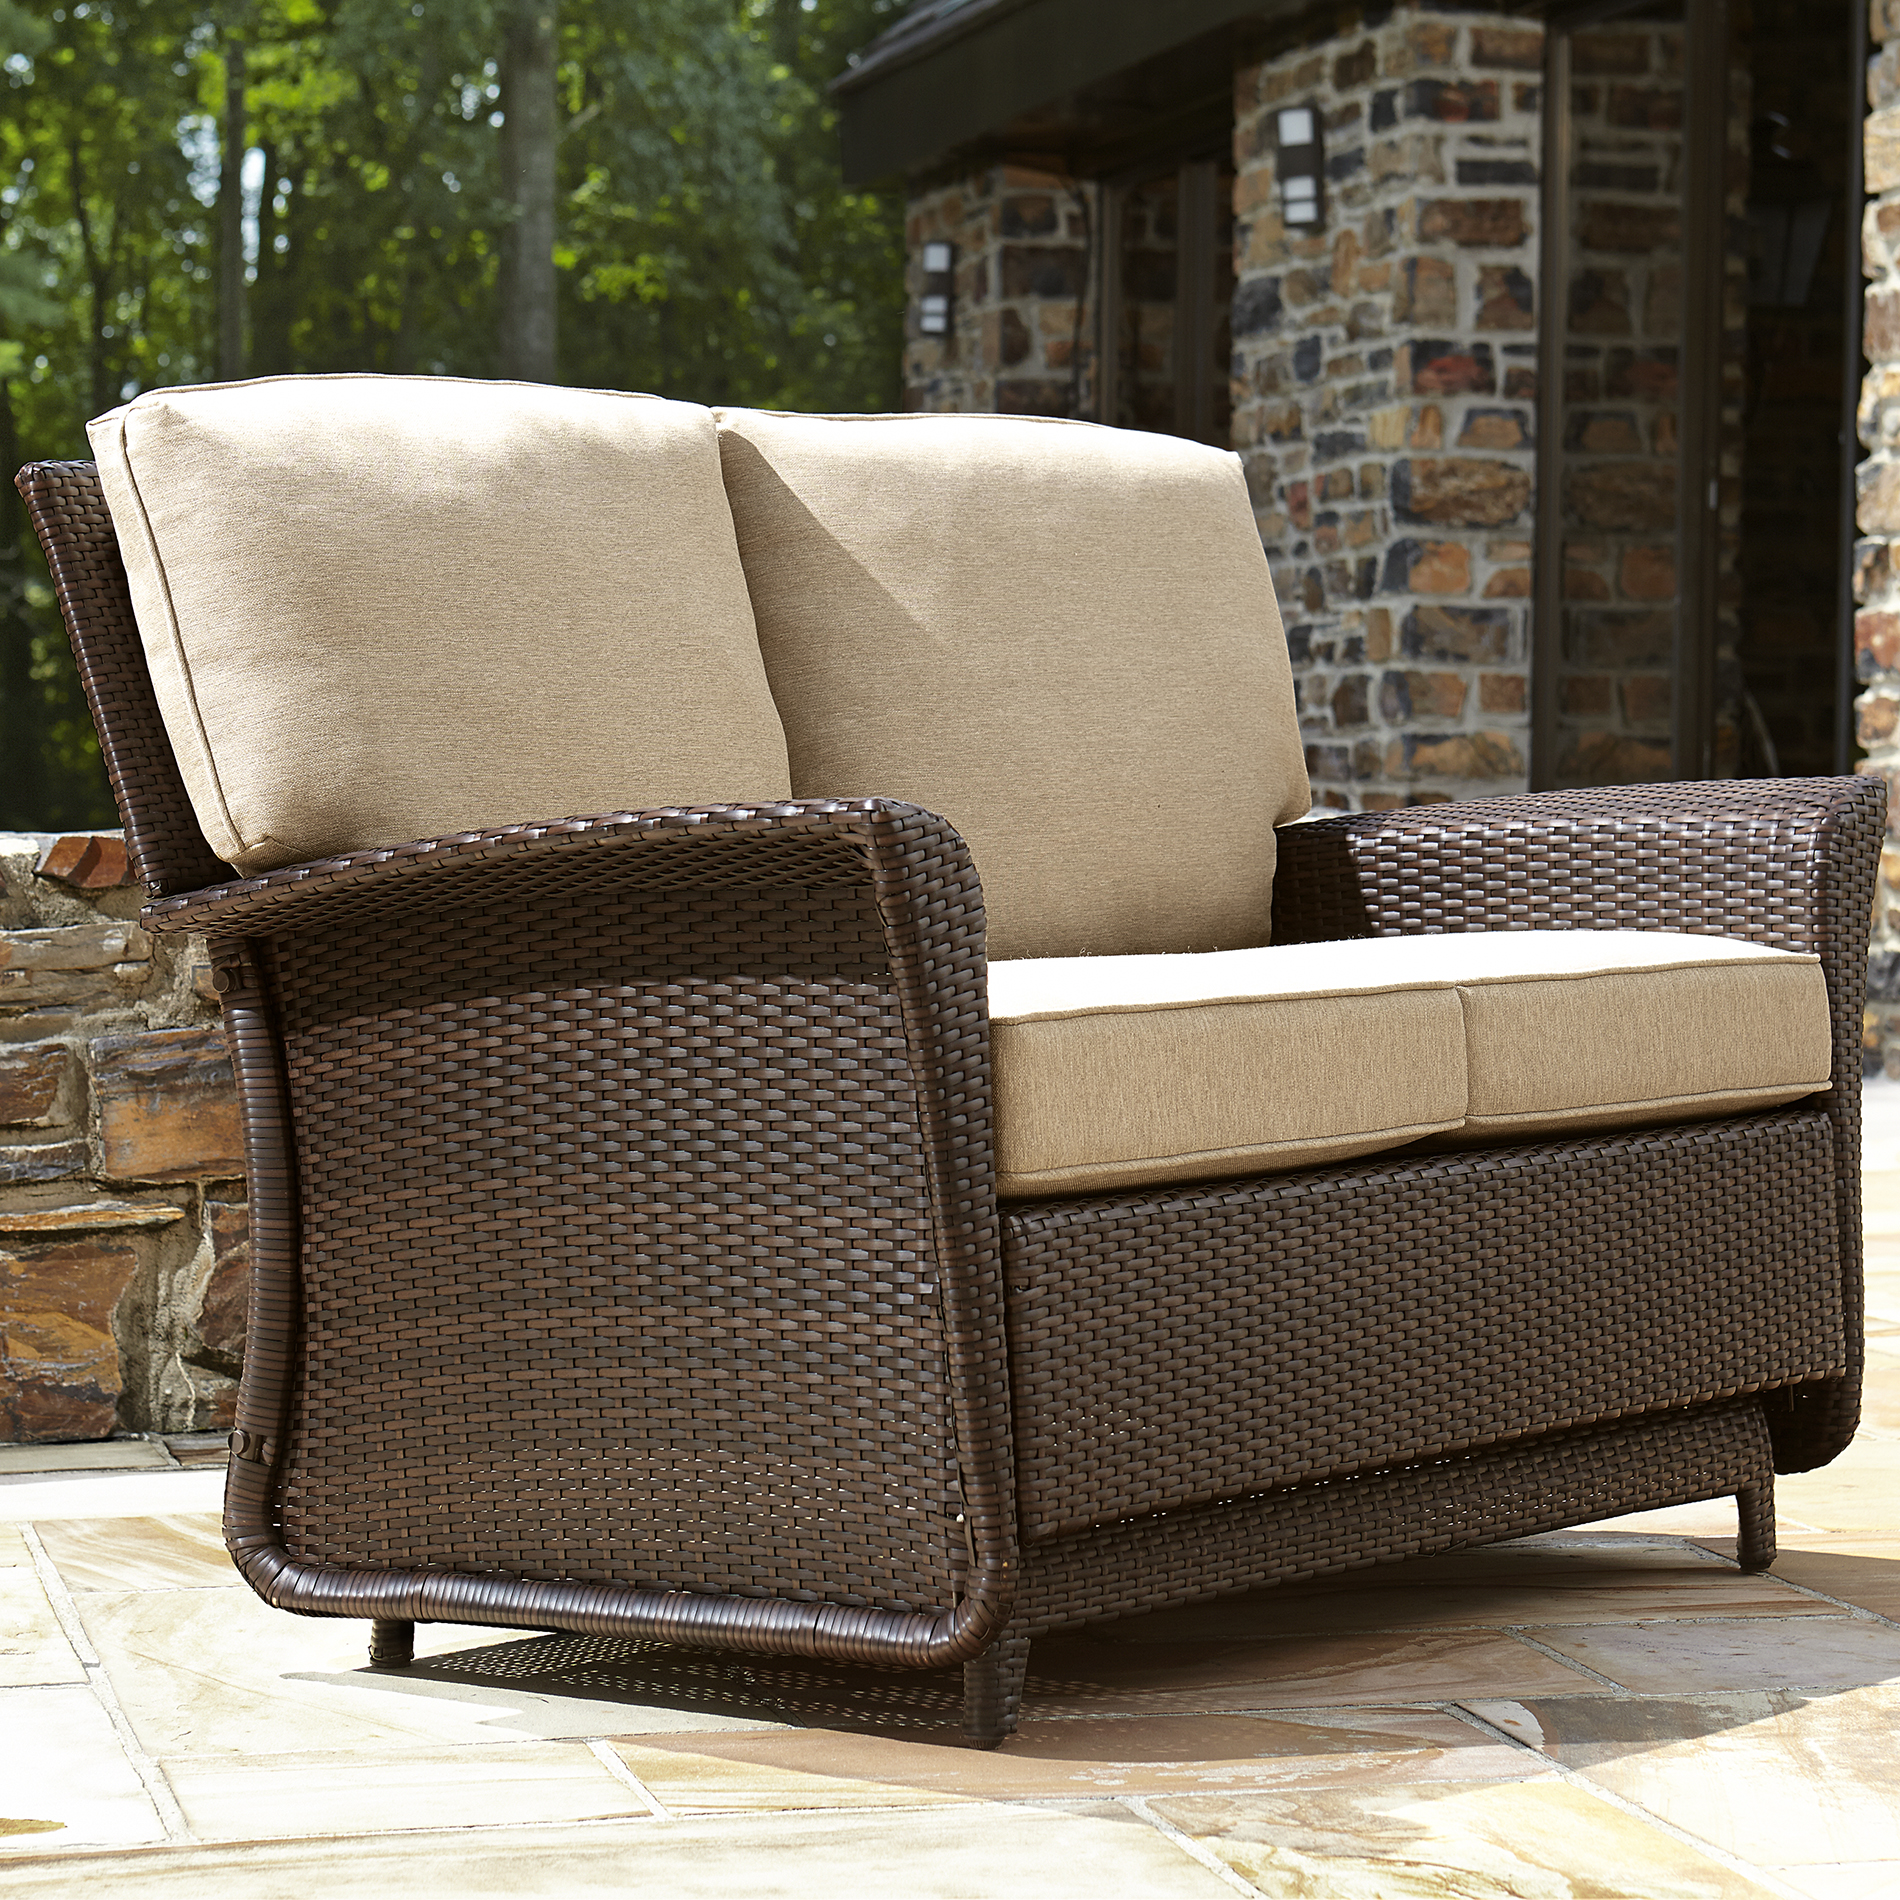 sears patio chair covers heated massage office ty pennington style parkside double glider limited